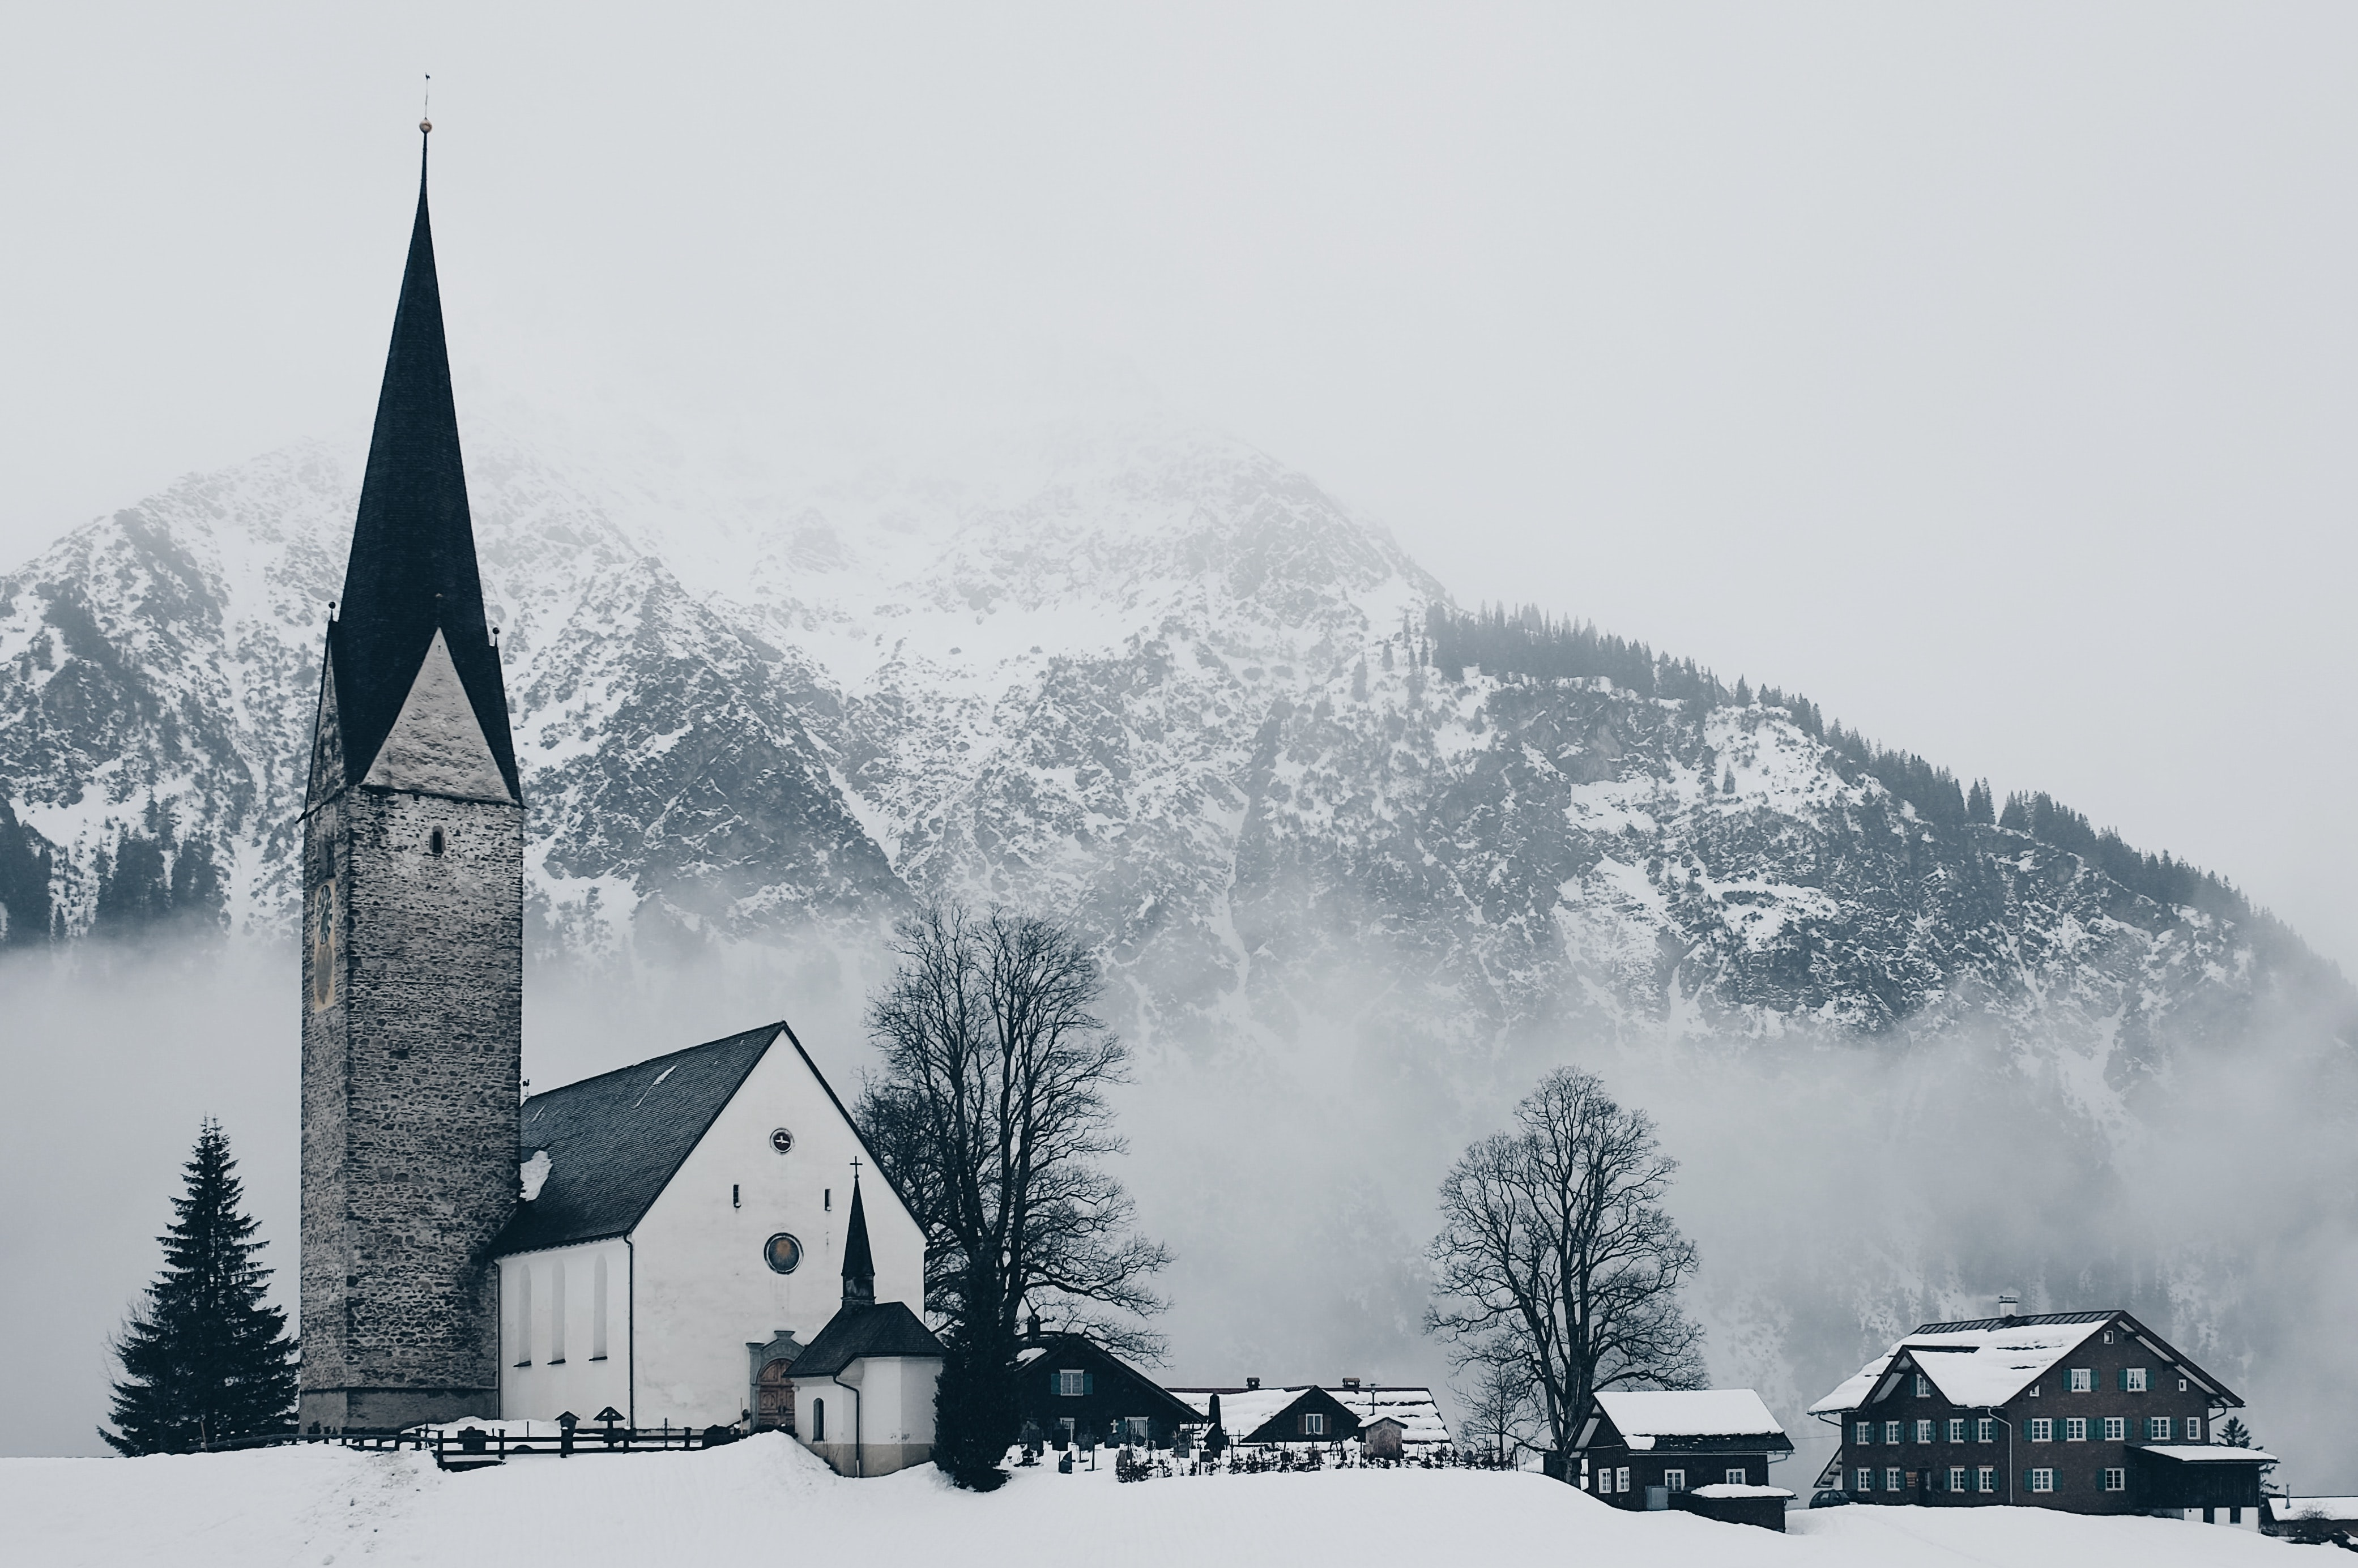 A snowy village and a church with a mountain covered in a deep hanging cloud